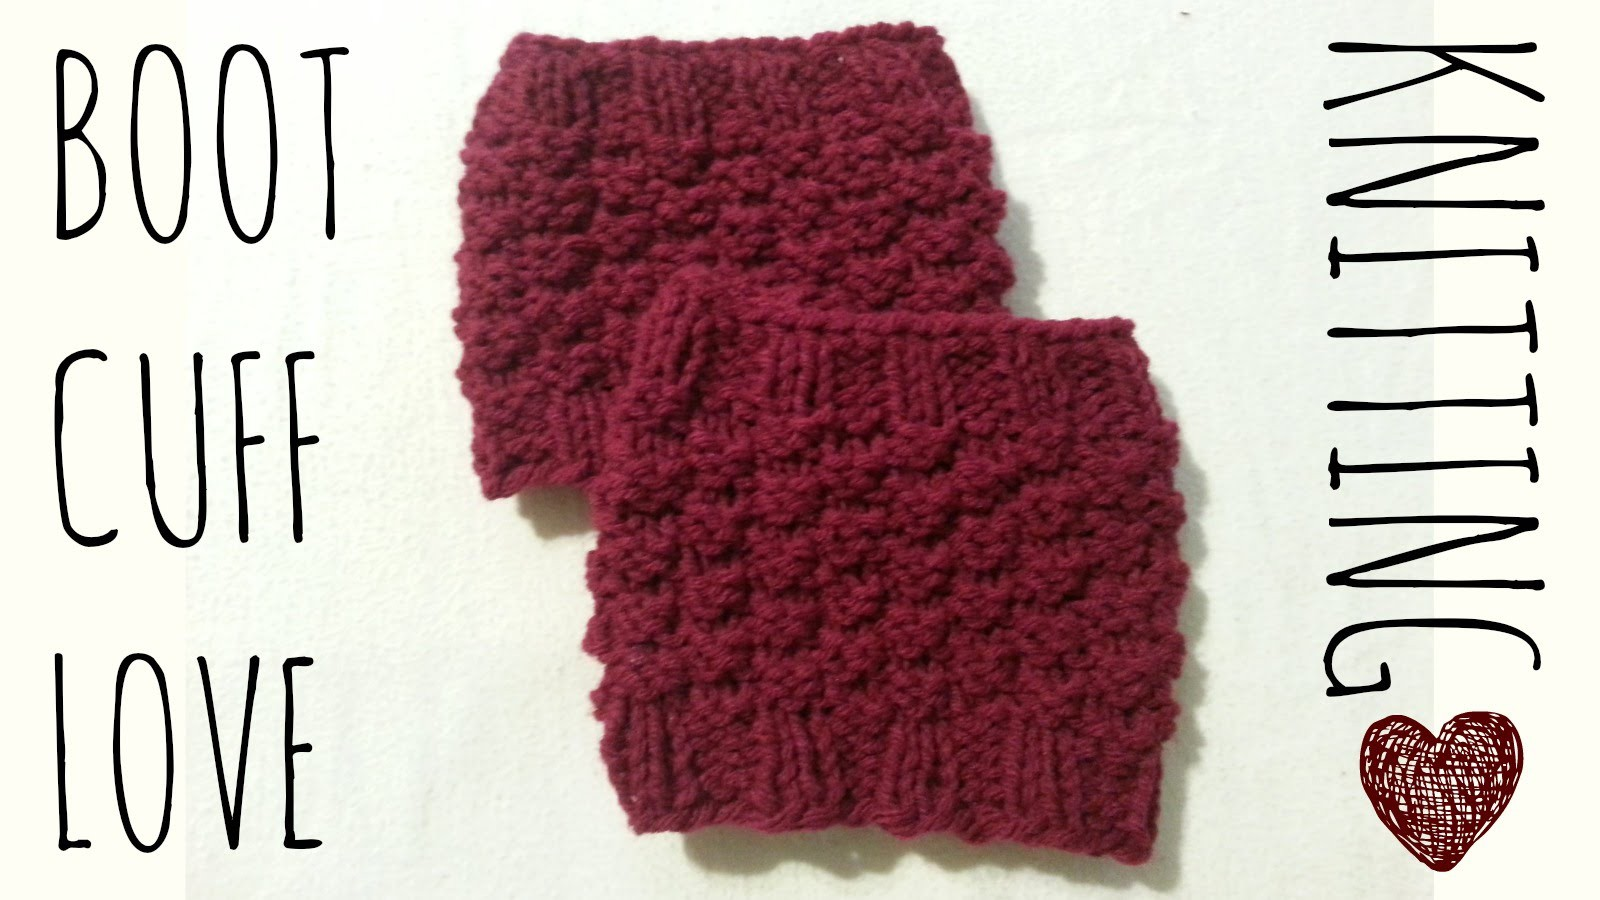 Boot Cuff 'Love'   Easy Knit Pattern   Knitting Accessories Tutorial